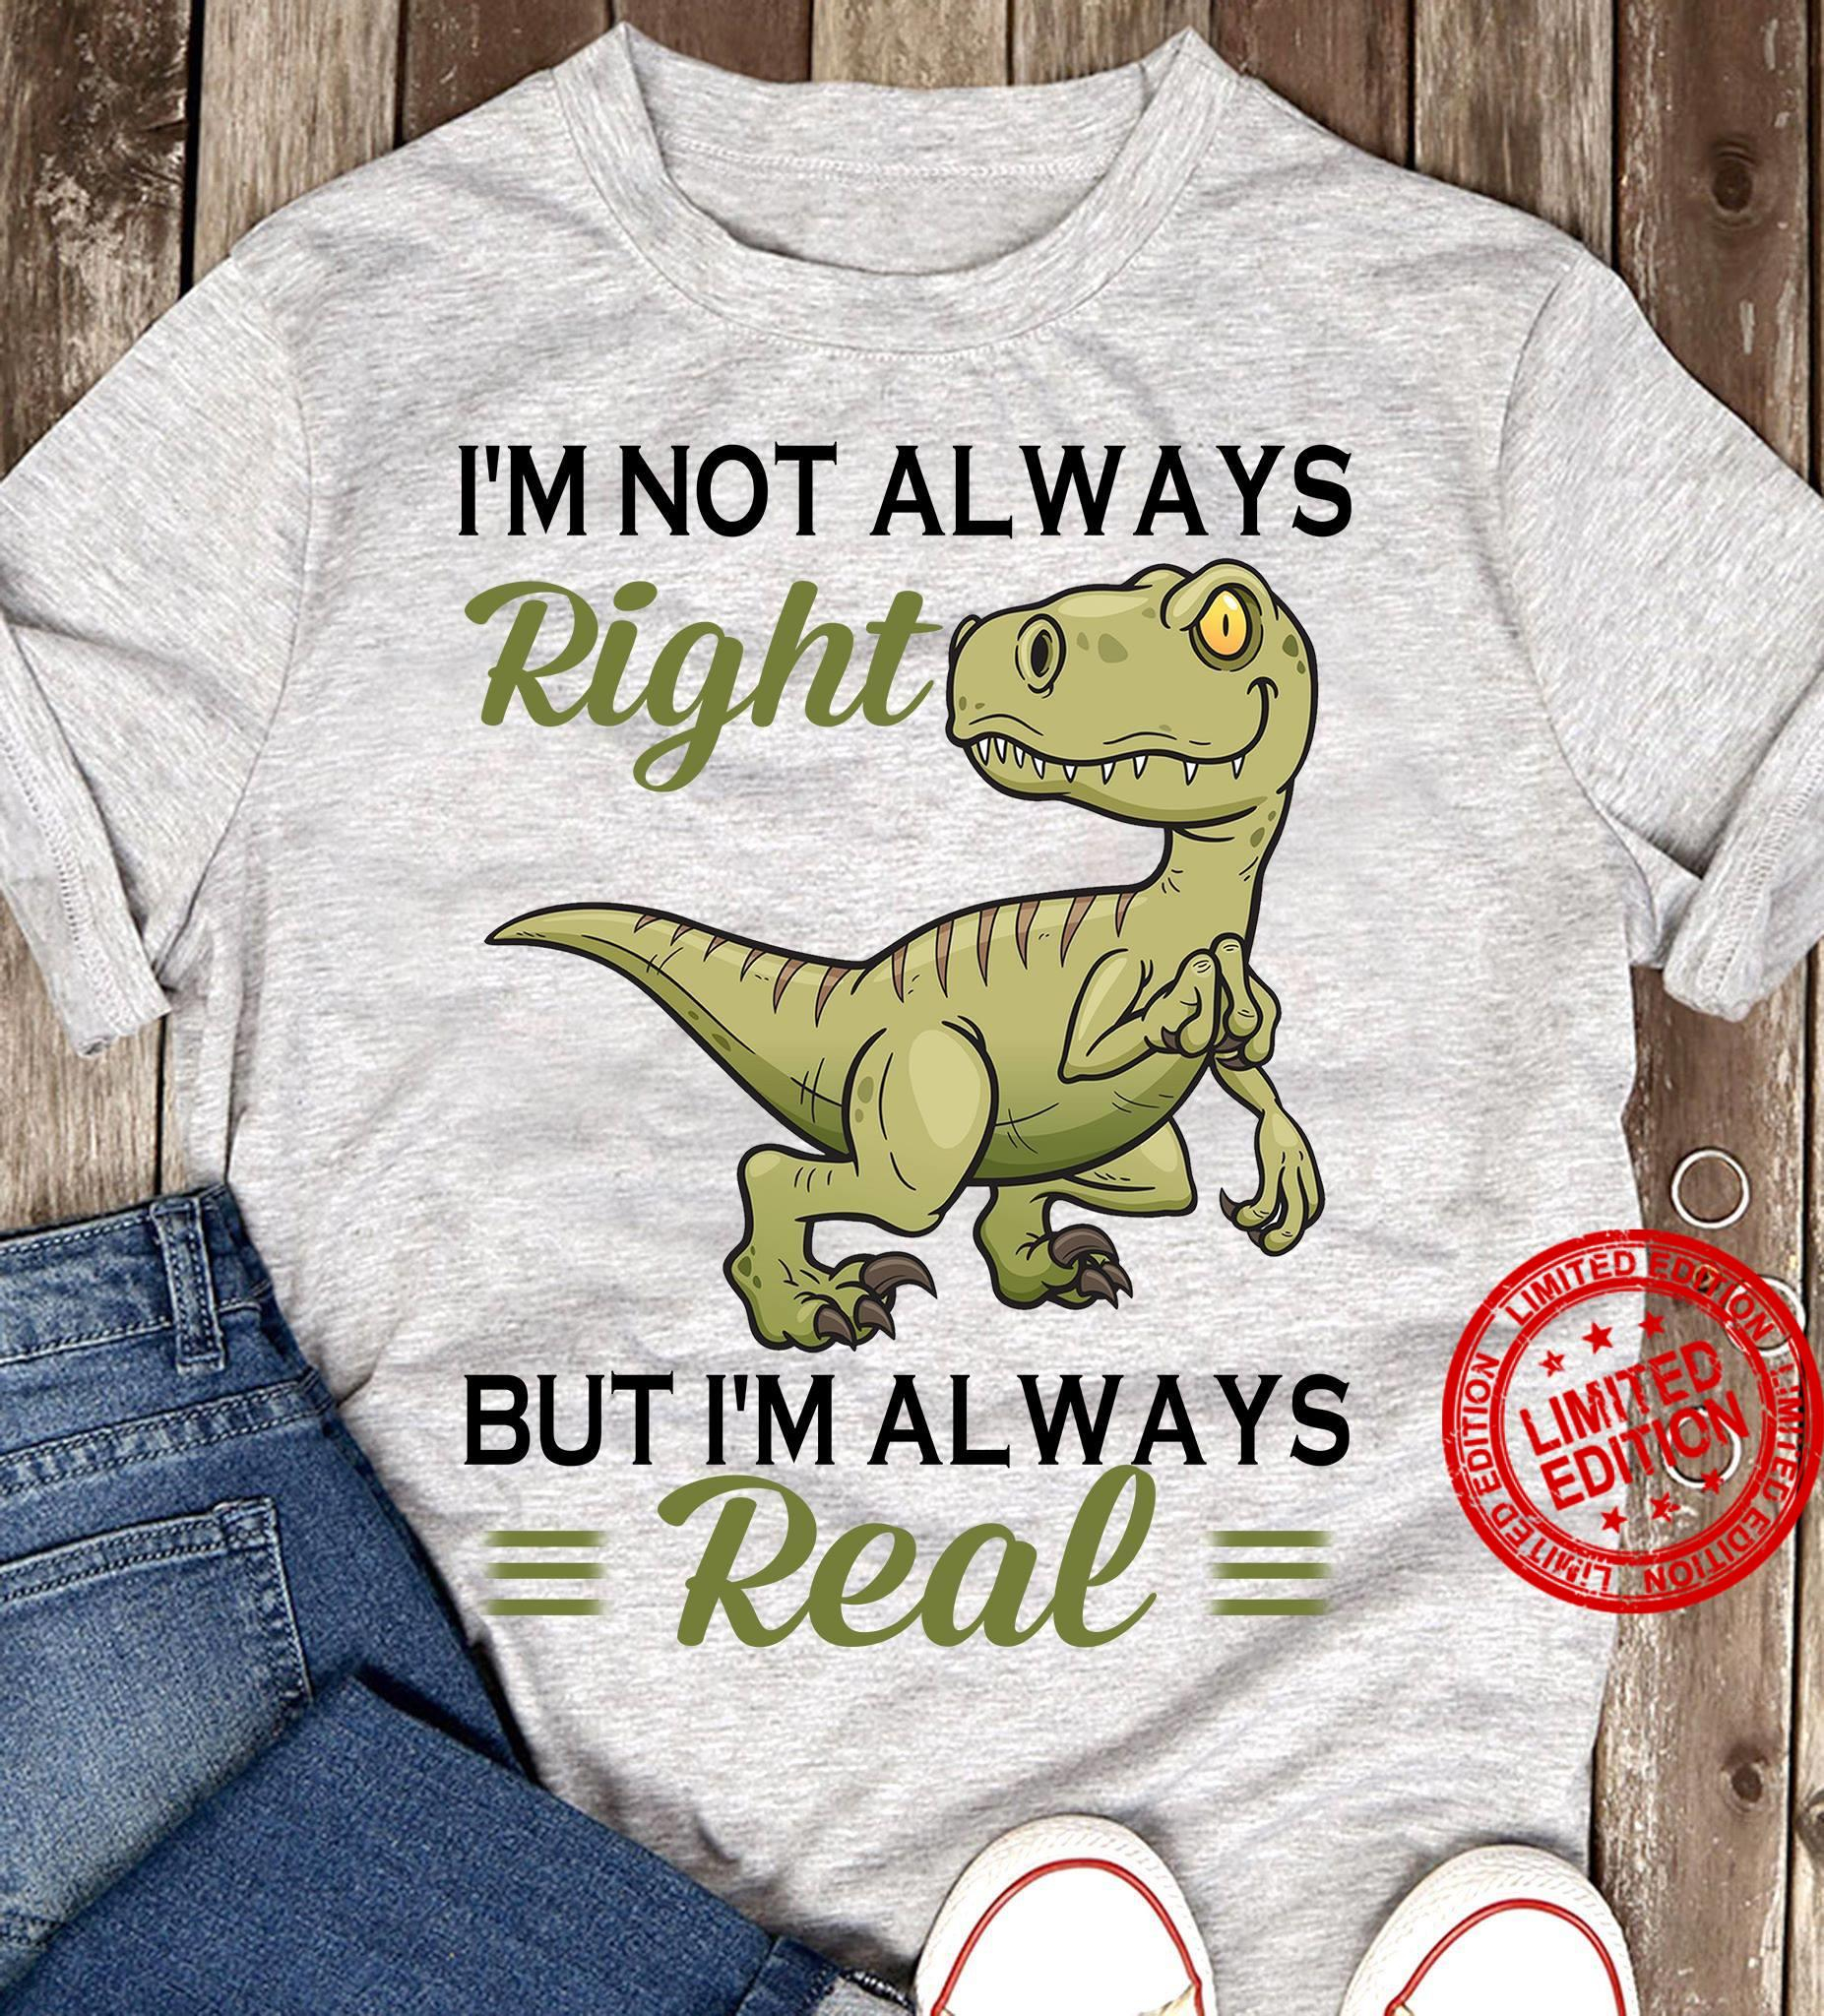 I'm Not Always Right But I'm Always Real Shirt